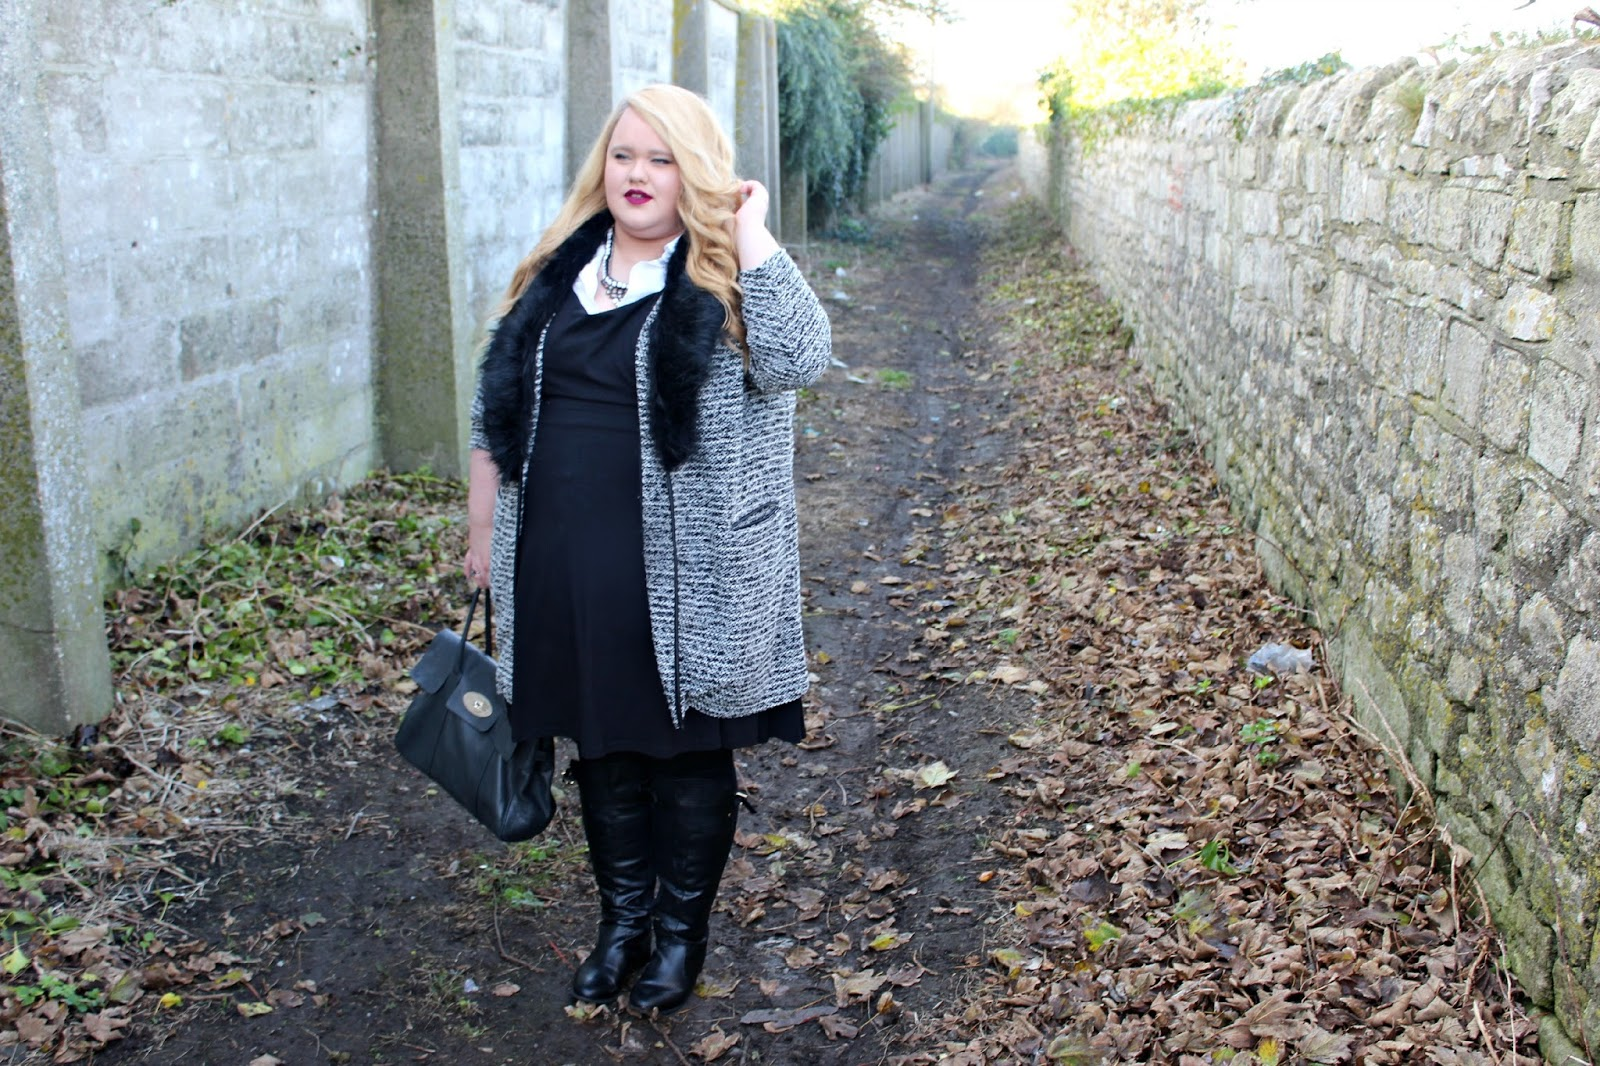 HD wallpapers plus size clothing uk